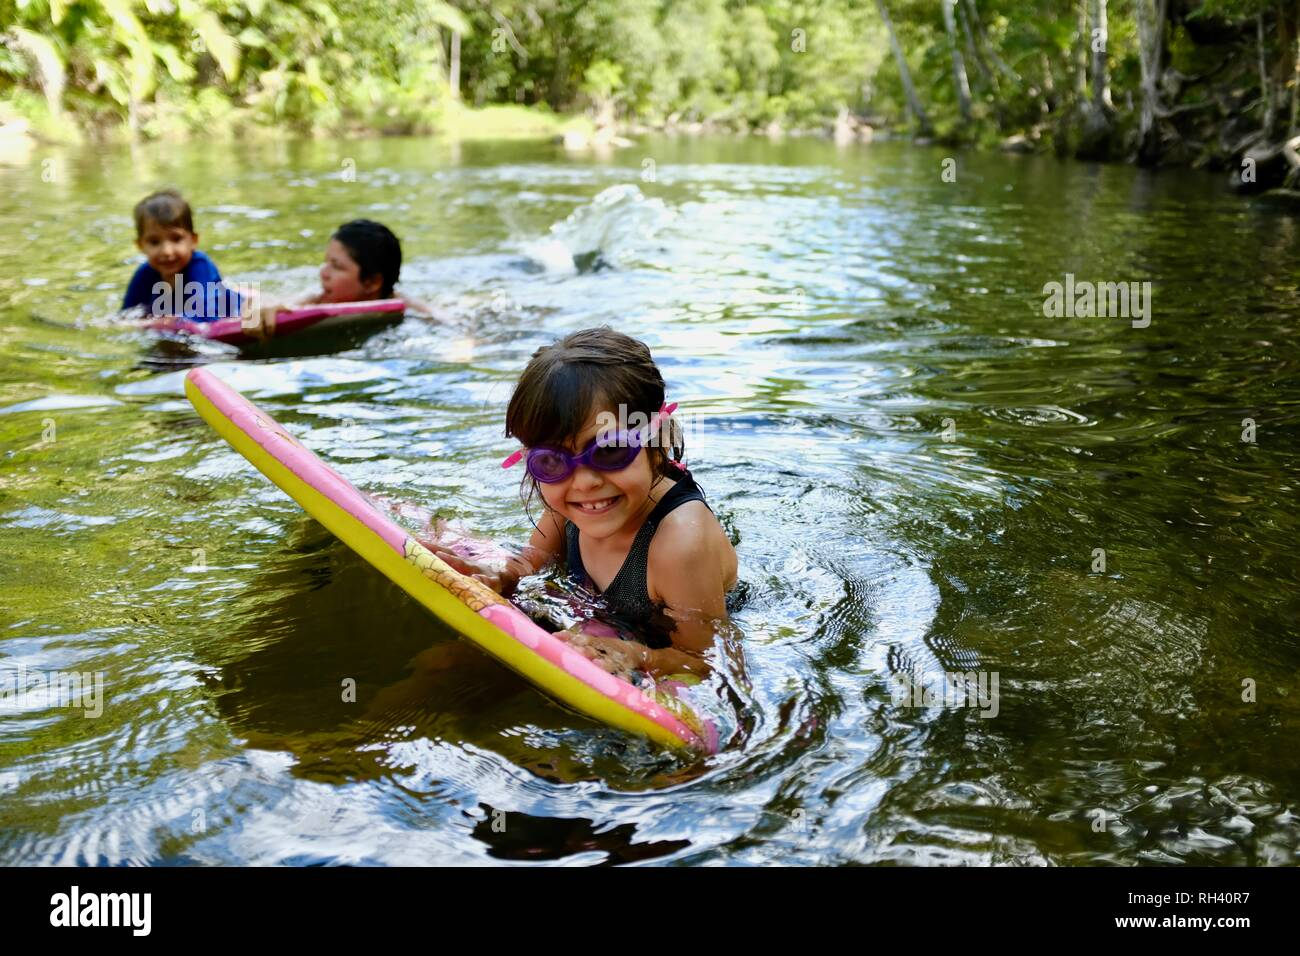 Young girl paddles on a boogie board with family in background, Finch Hatton, Queensland 4756, Australia Stock Photo